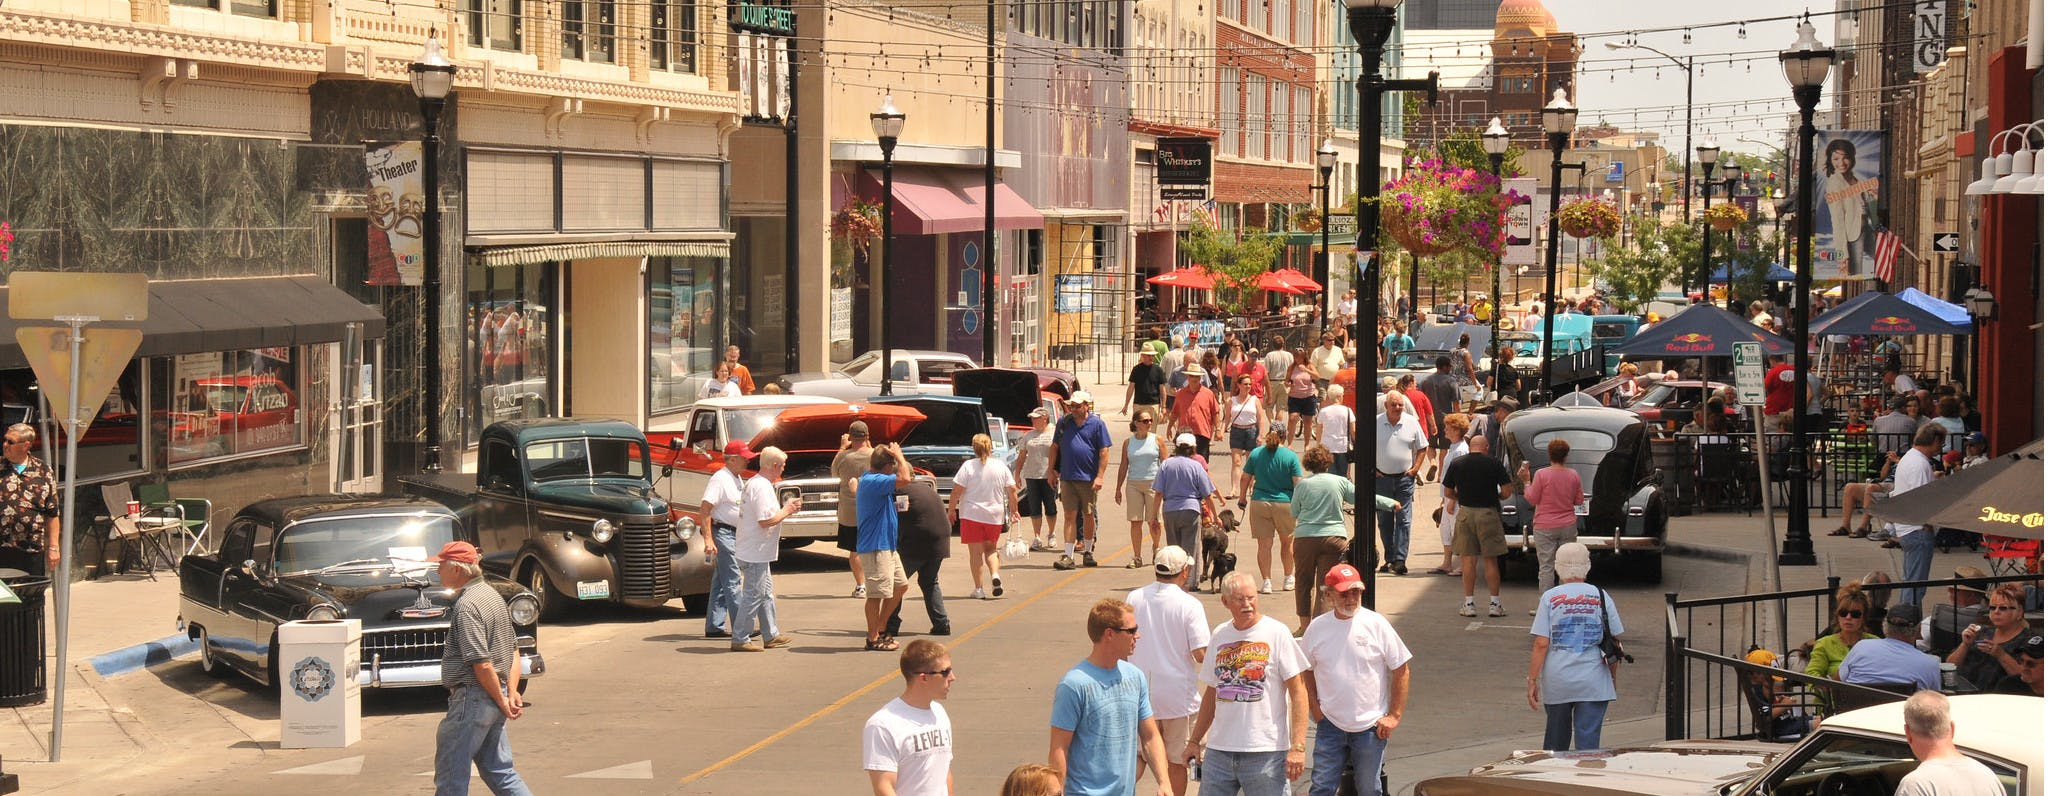 Birthplace of Route 66 Festival in Springfield, Missouri.